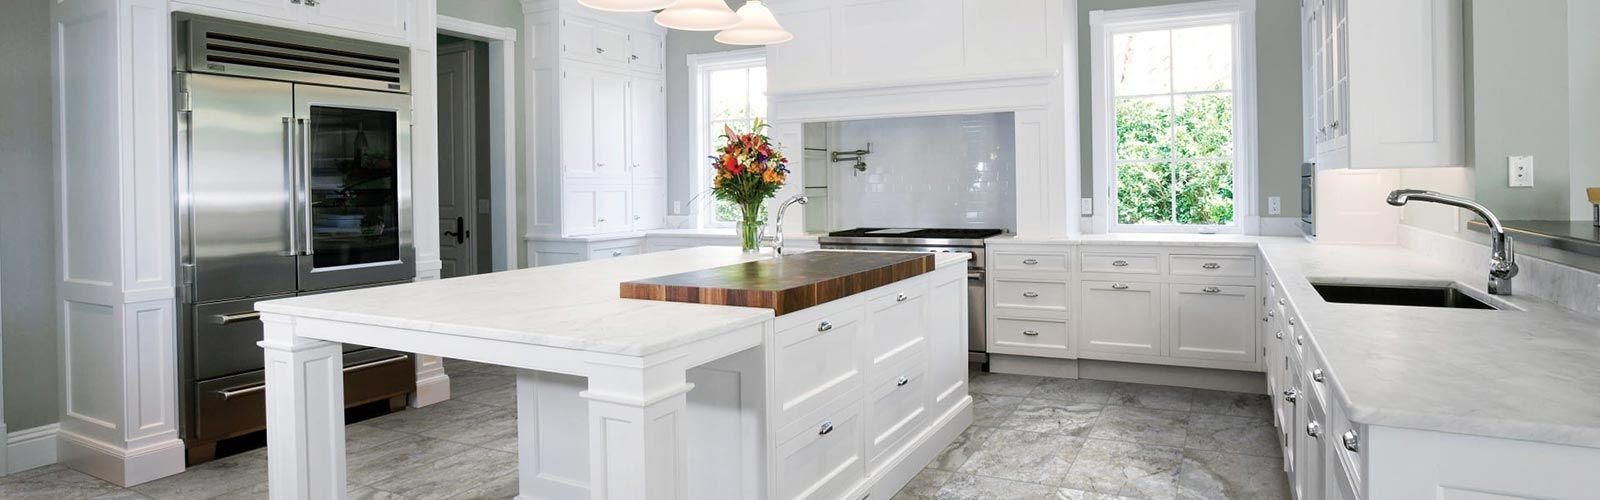 Pin By Affordable Quality Marble And On Https Southcarolinagranite Com Custom Countertops Affordable Cabinets Semi Custom Cabinets